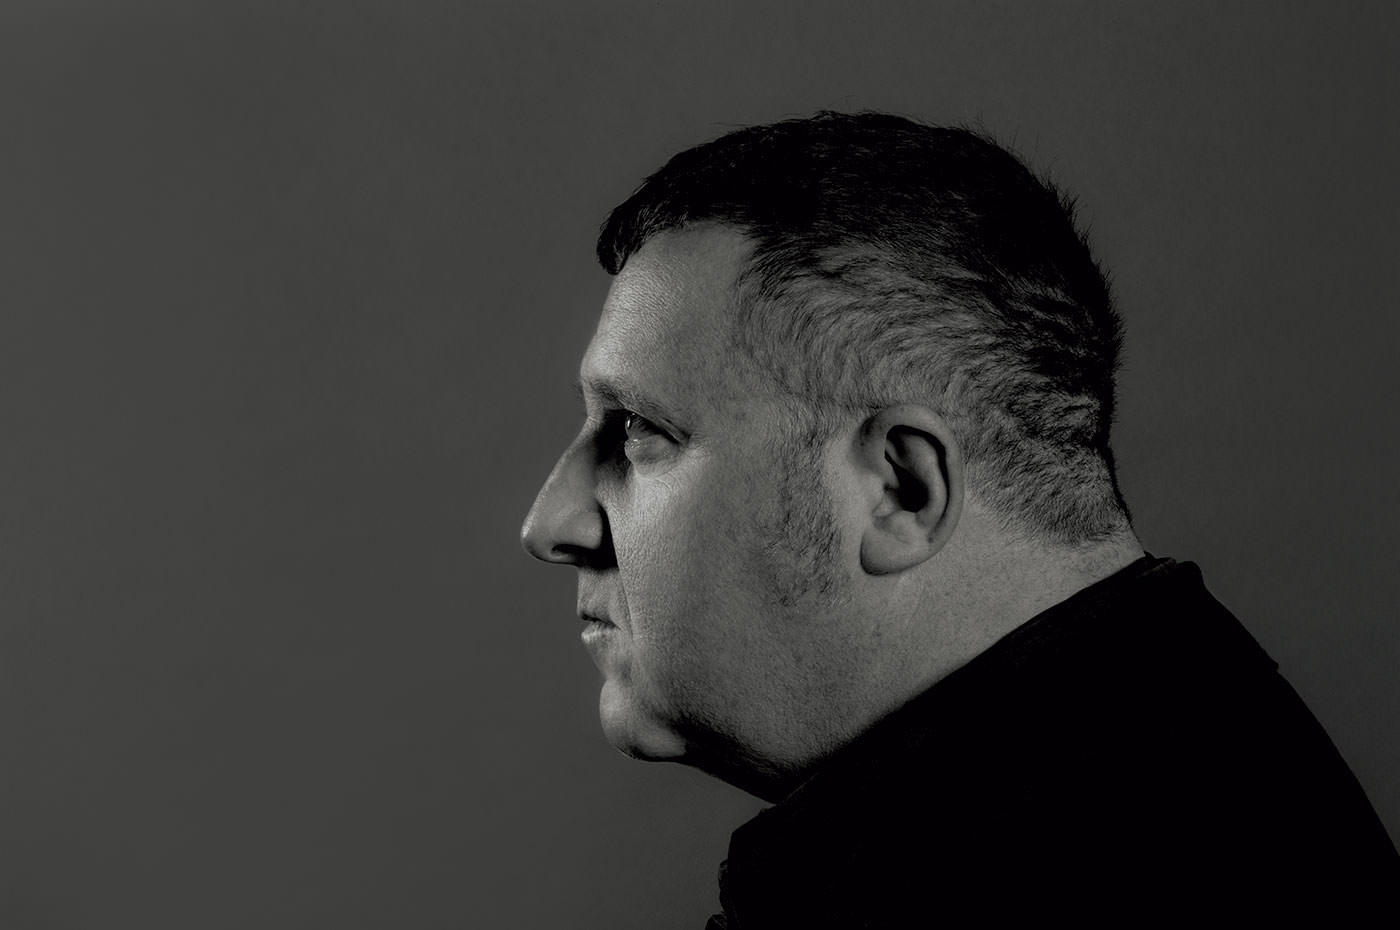 Alber Elbaz leaves the artistic direction of Lanvin